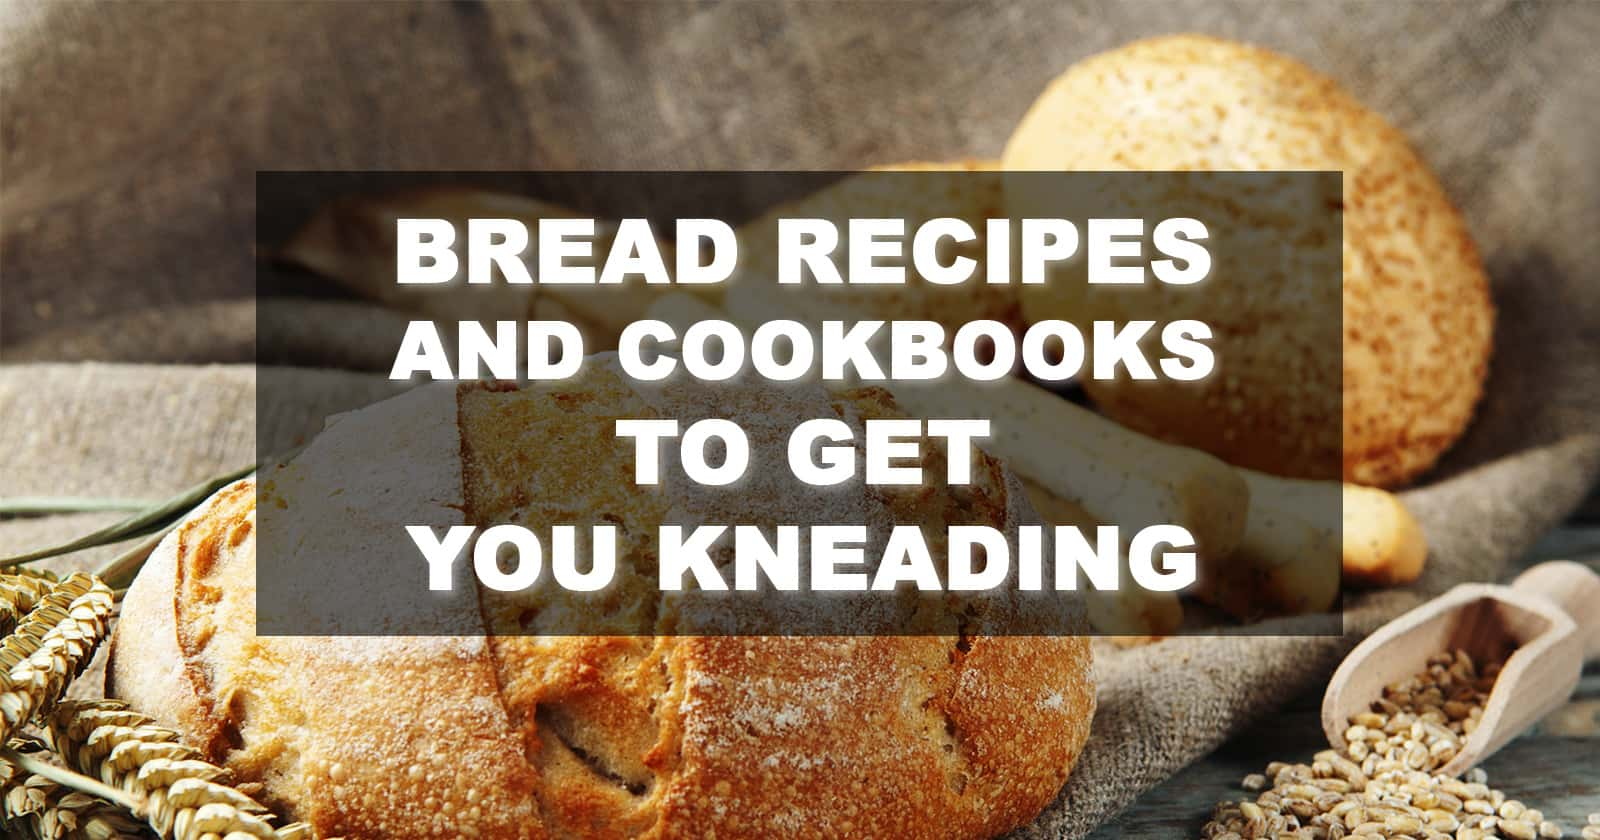 Best Bread Recipes and Cookbooks